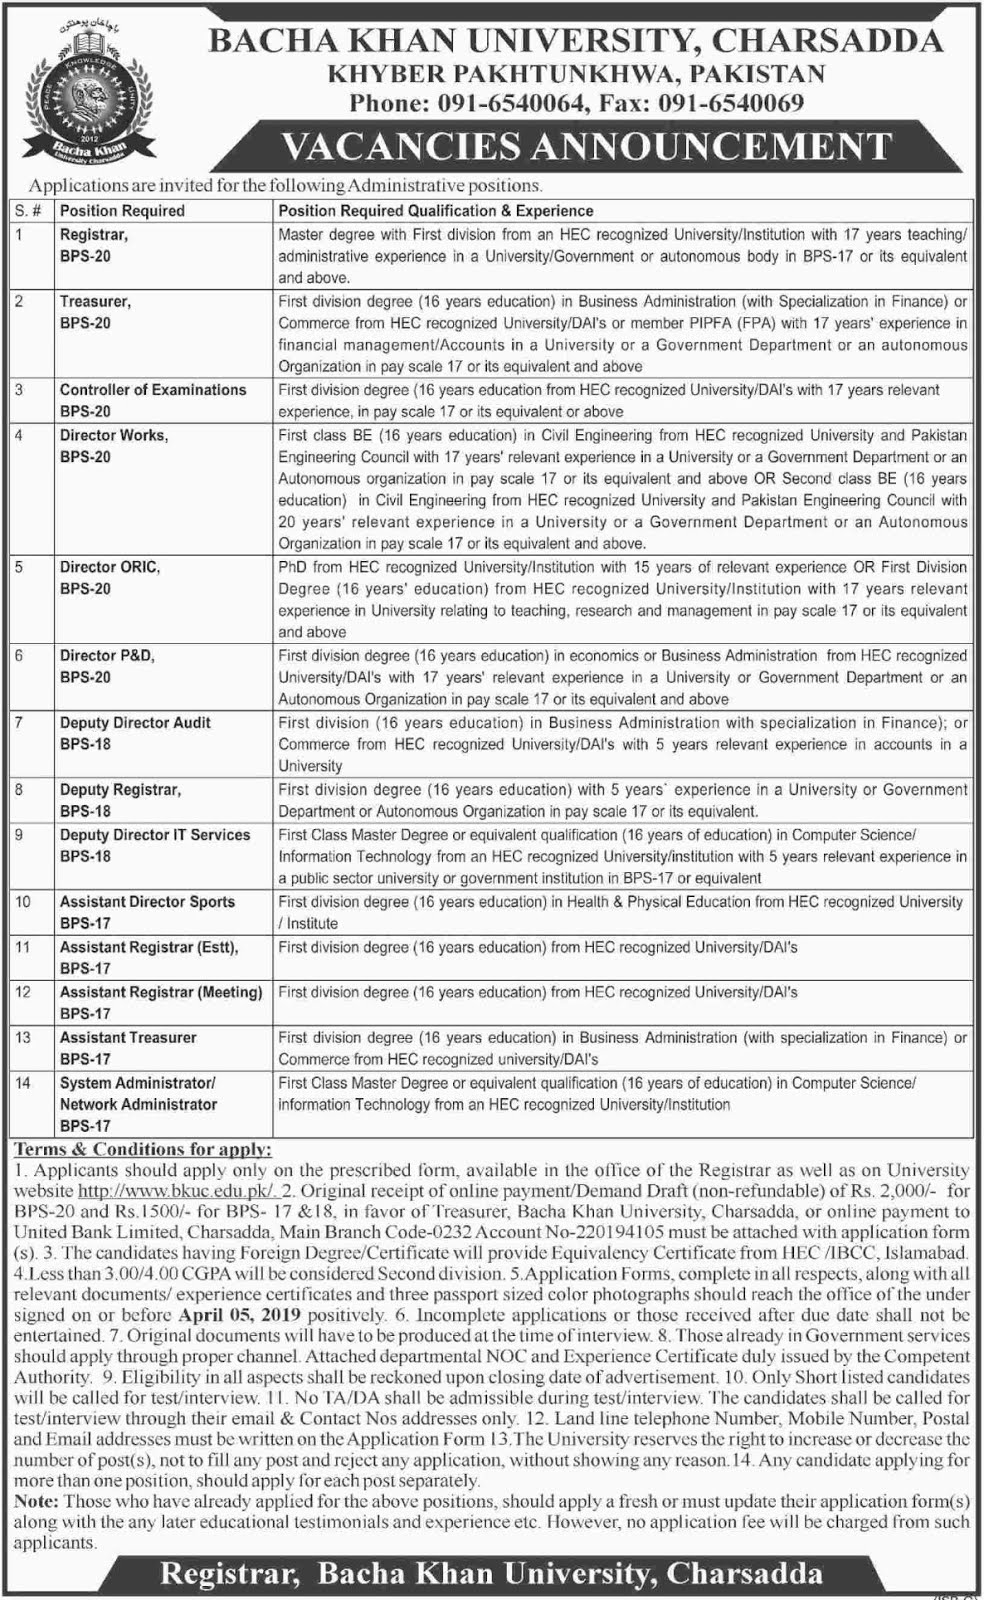 Bacha Khan University Charsadda Jobs 2019 KPK Latest